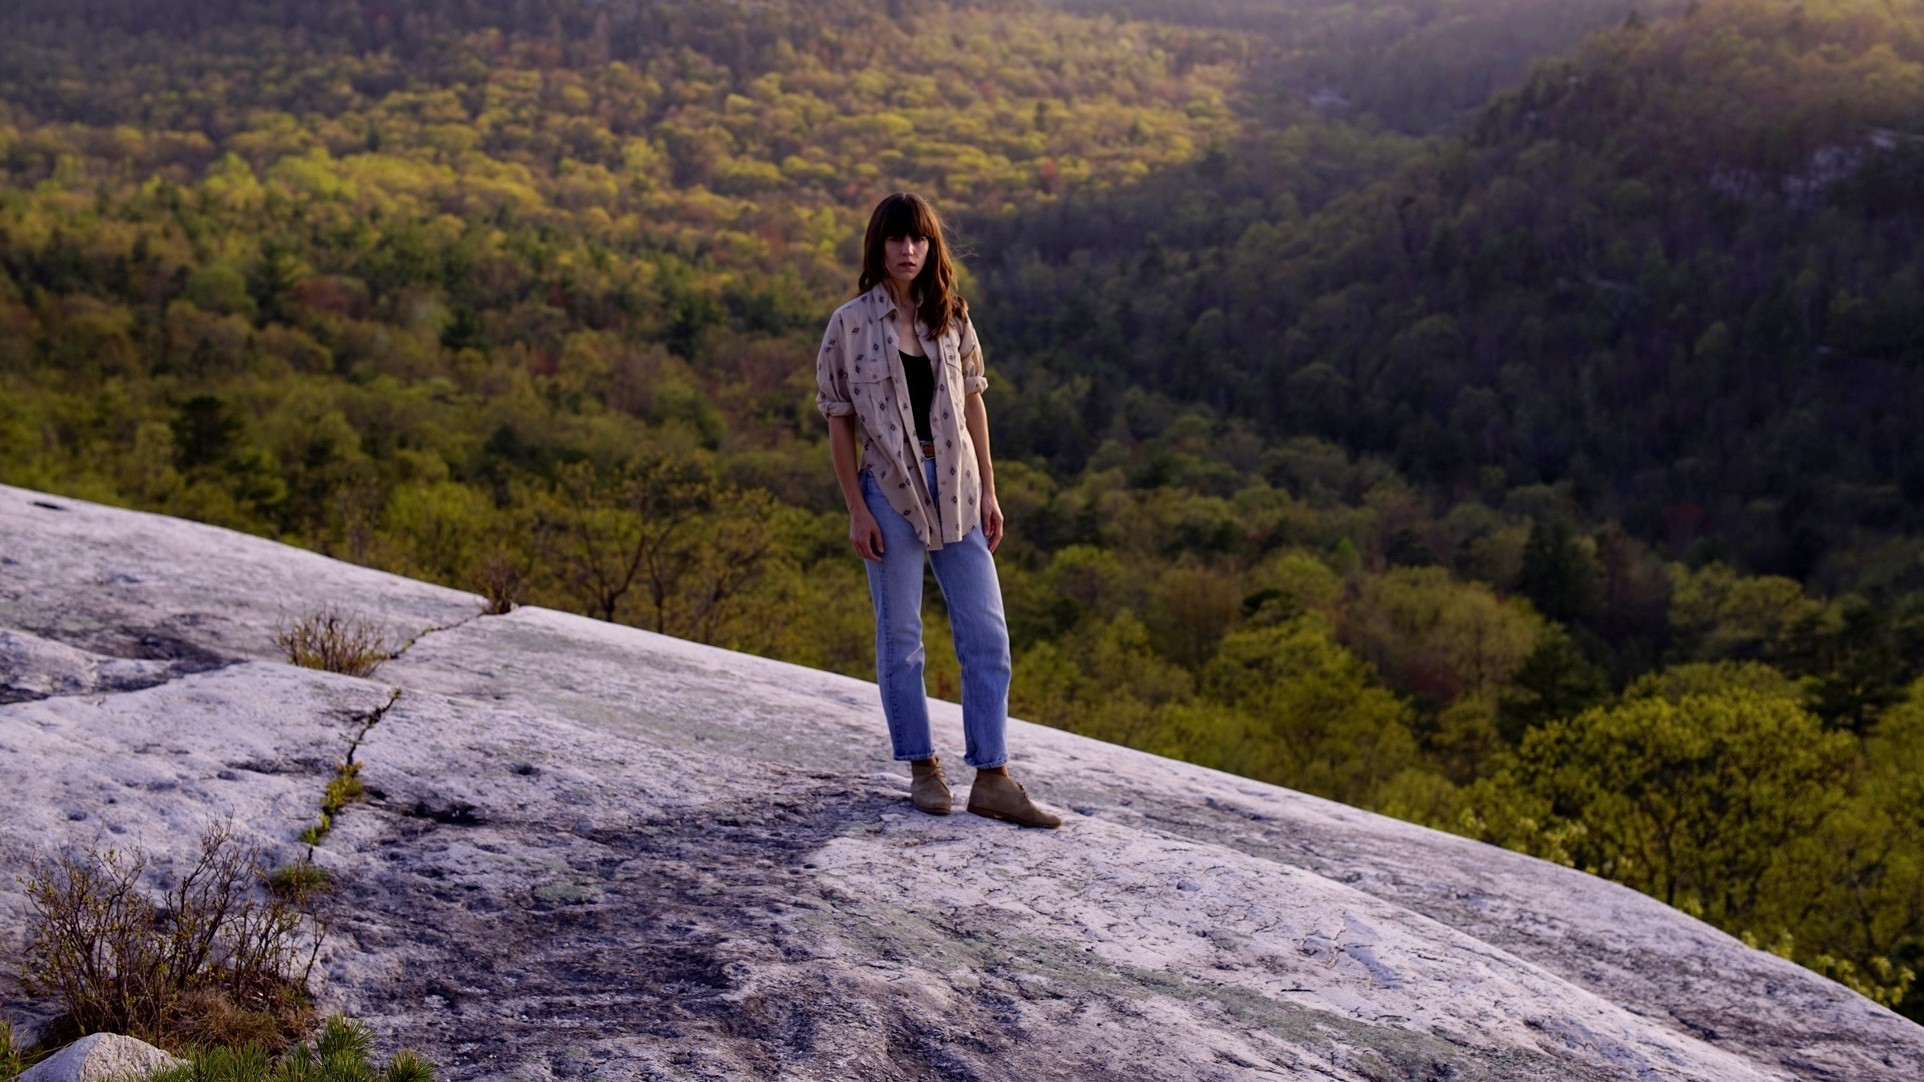 Singer-Songwriter Eleanor Friedberger Doesn't Care if Her Music Sounds 'New'